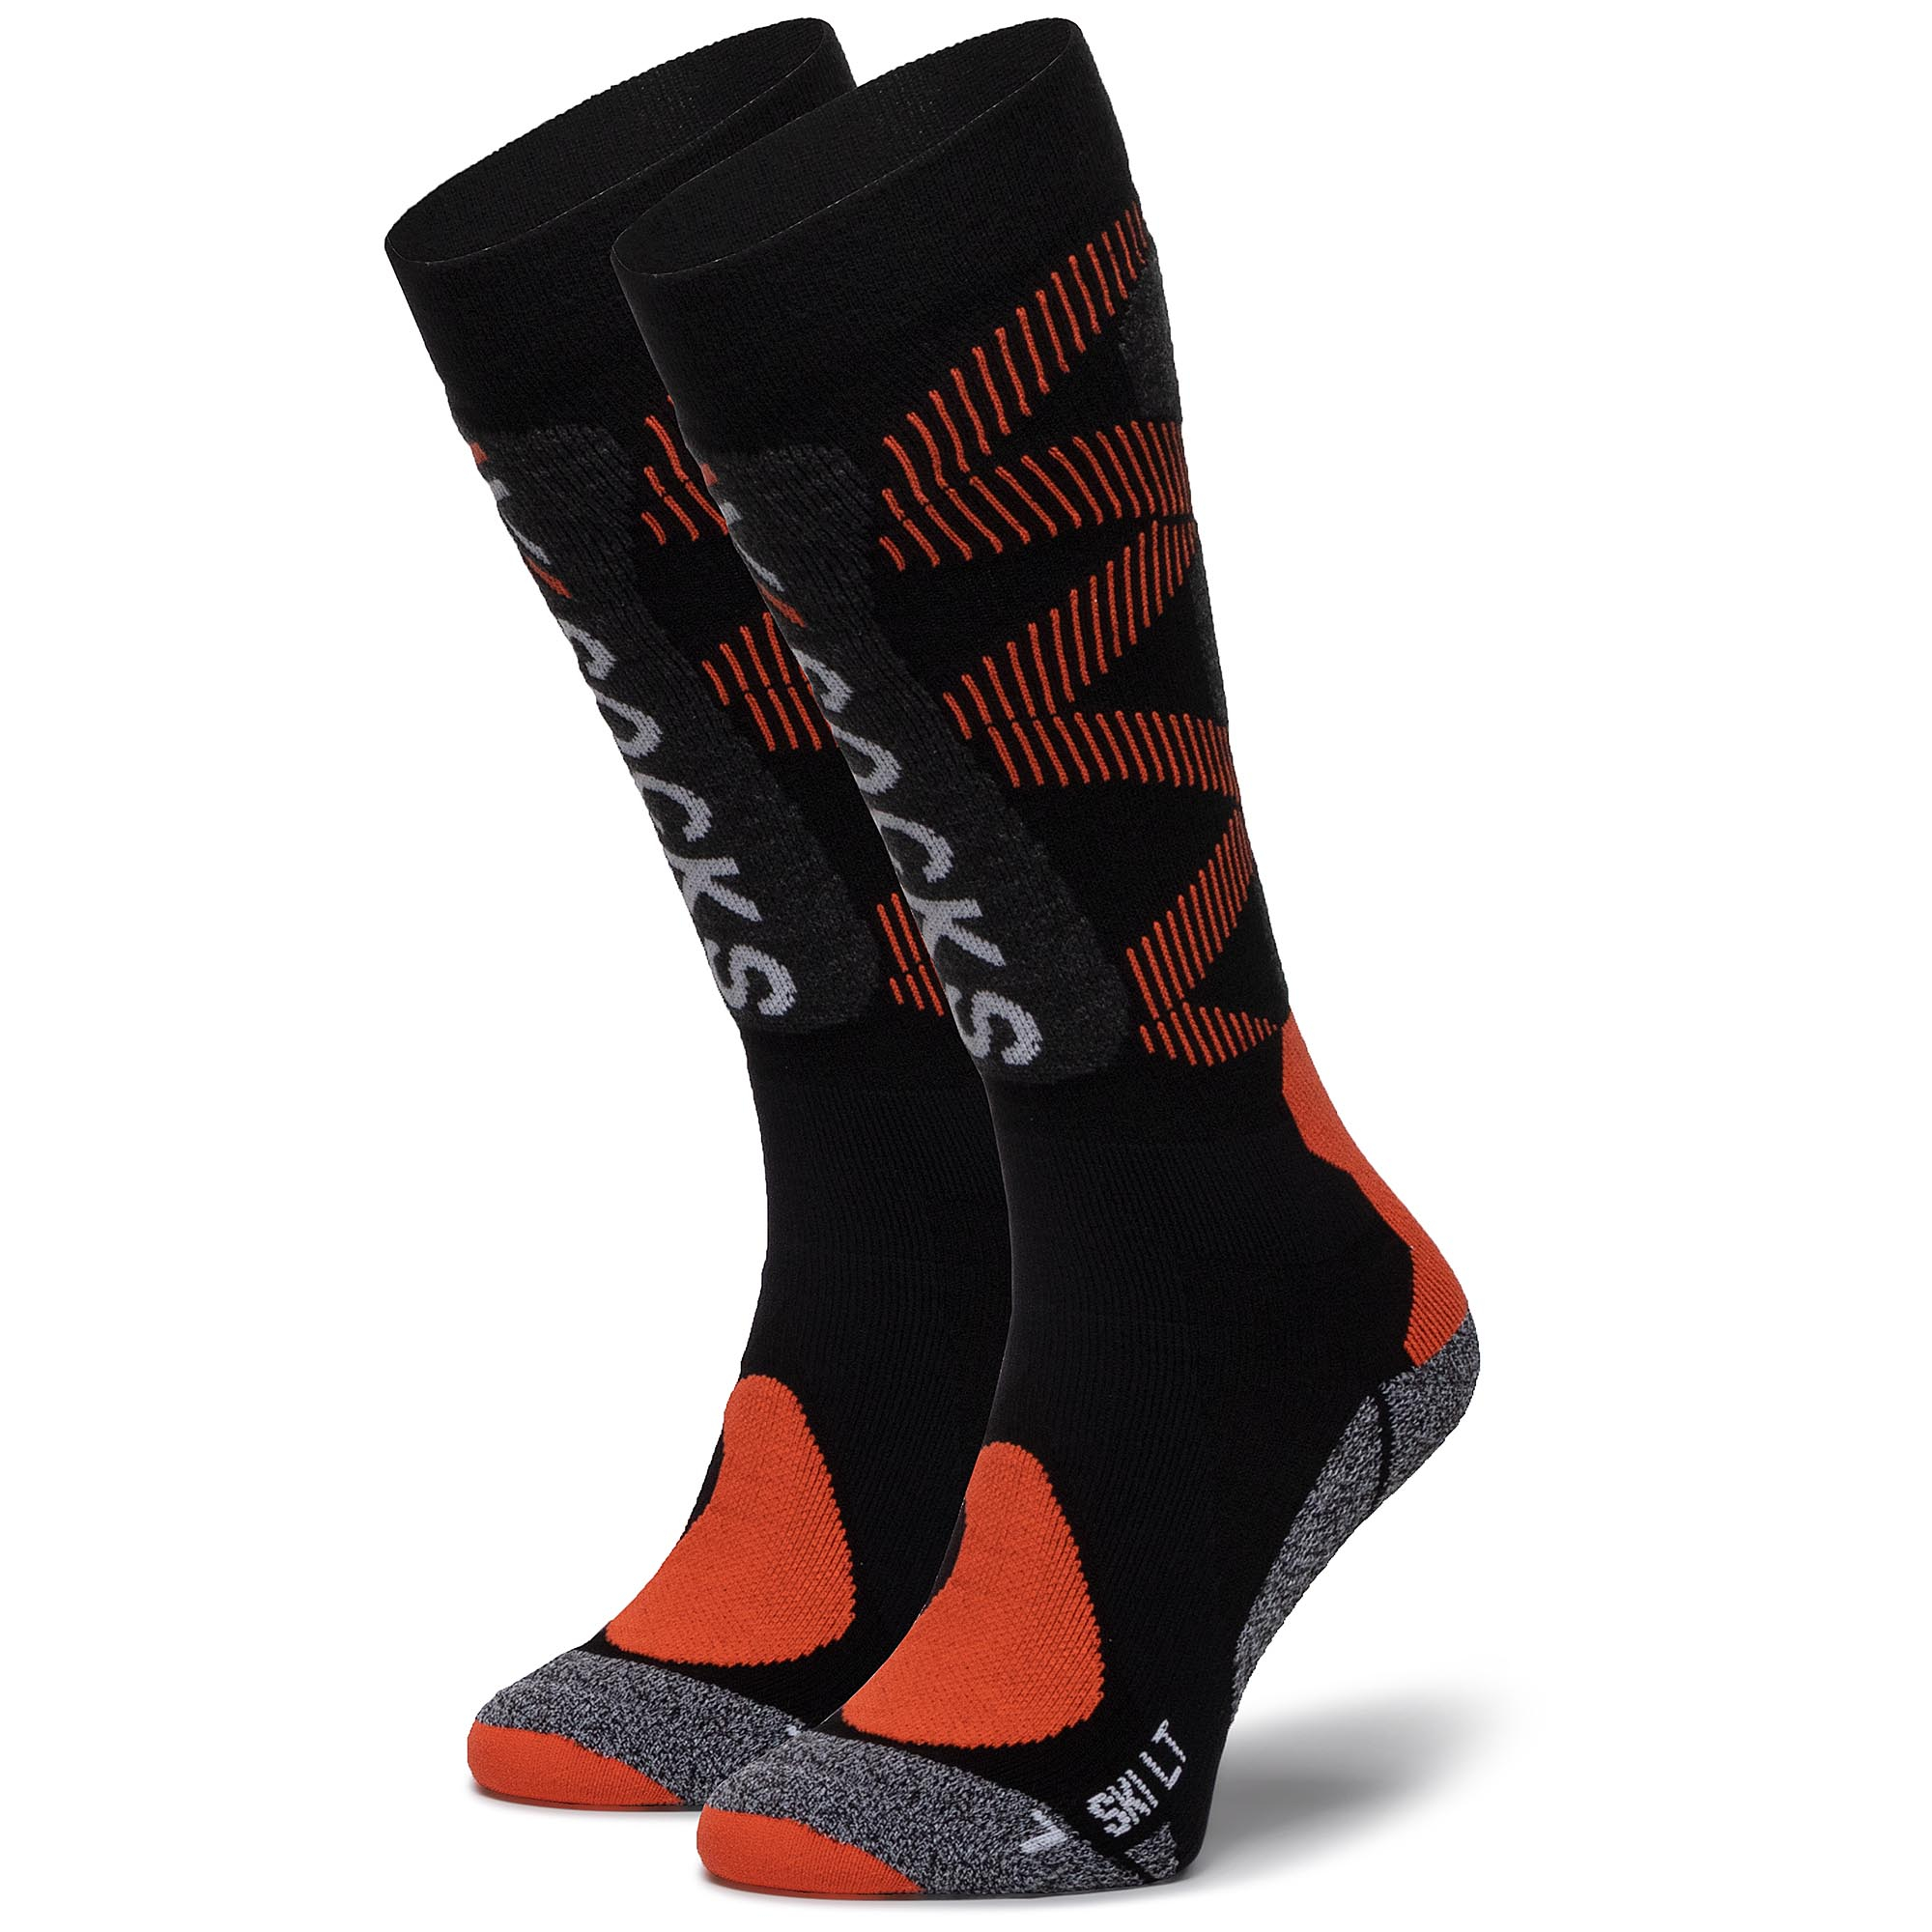 Șosete Înalte Unisex X-Socks - Ski Light 4.0 Xsssklw19u B041 imagine epantofi.ro 2021